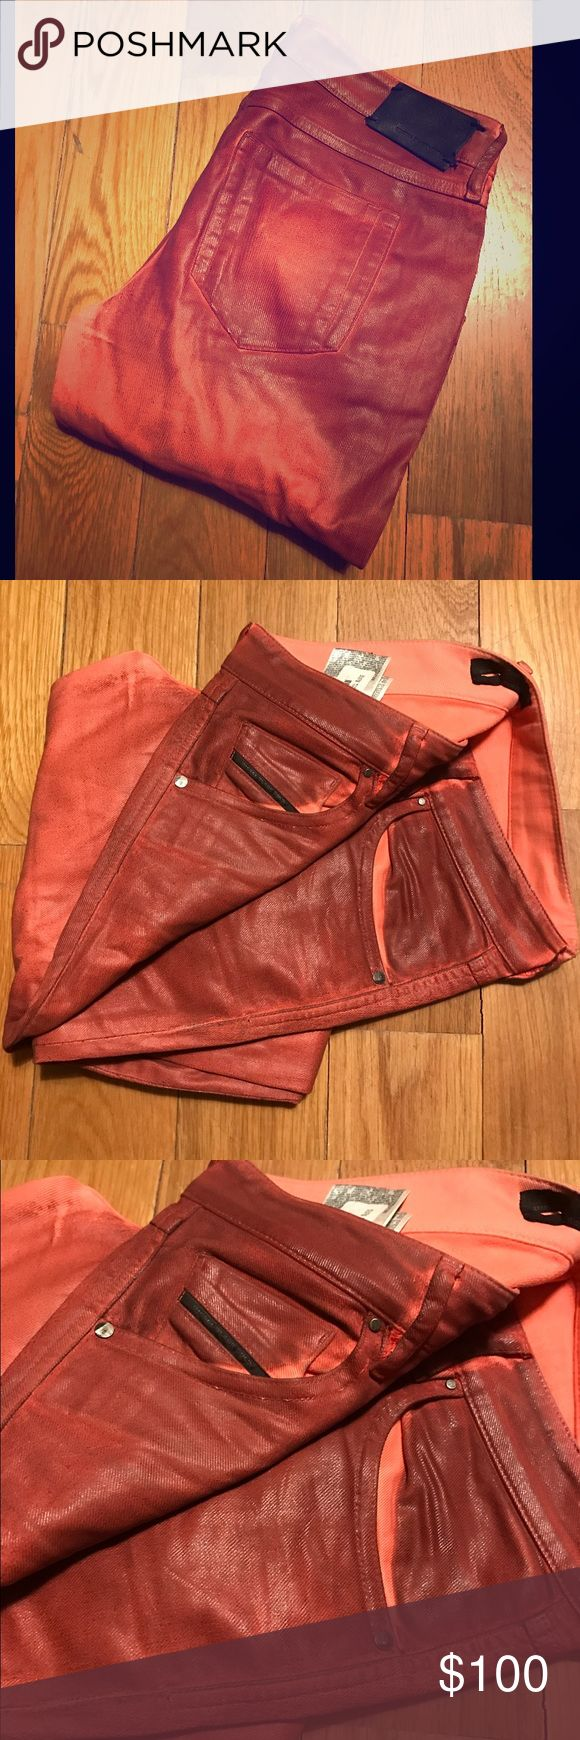 DIESEL WAXED DENIM Diesel Black Gold incredibly flash skinny mid low rise waxed coated and sophisticatedly treated. A fiery sunset orangey strawberry red. Sample sale purchase. I am an Diesel veteran. Only the Brave. Fits a size 28 Diesel Black Gold Jeans Skinny